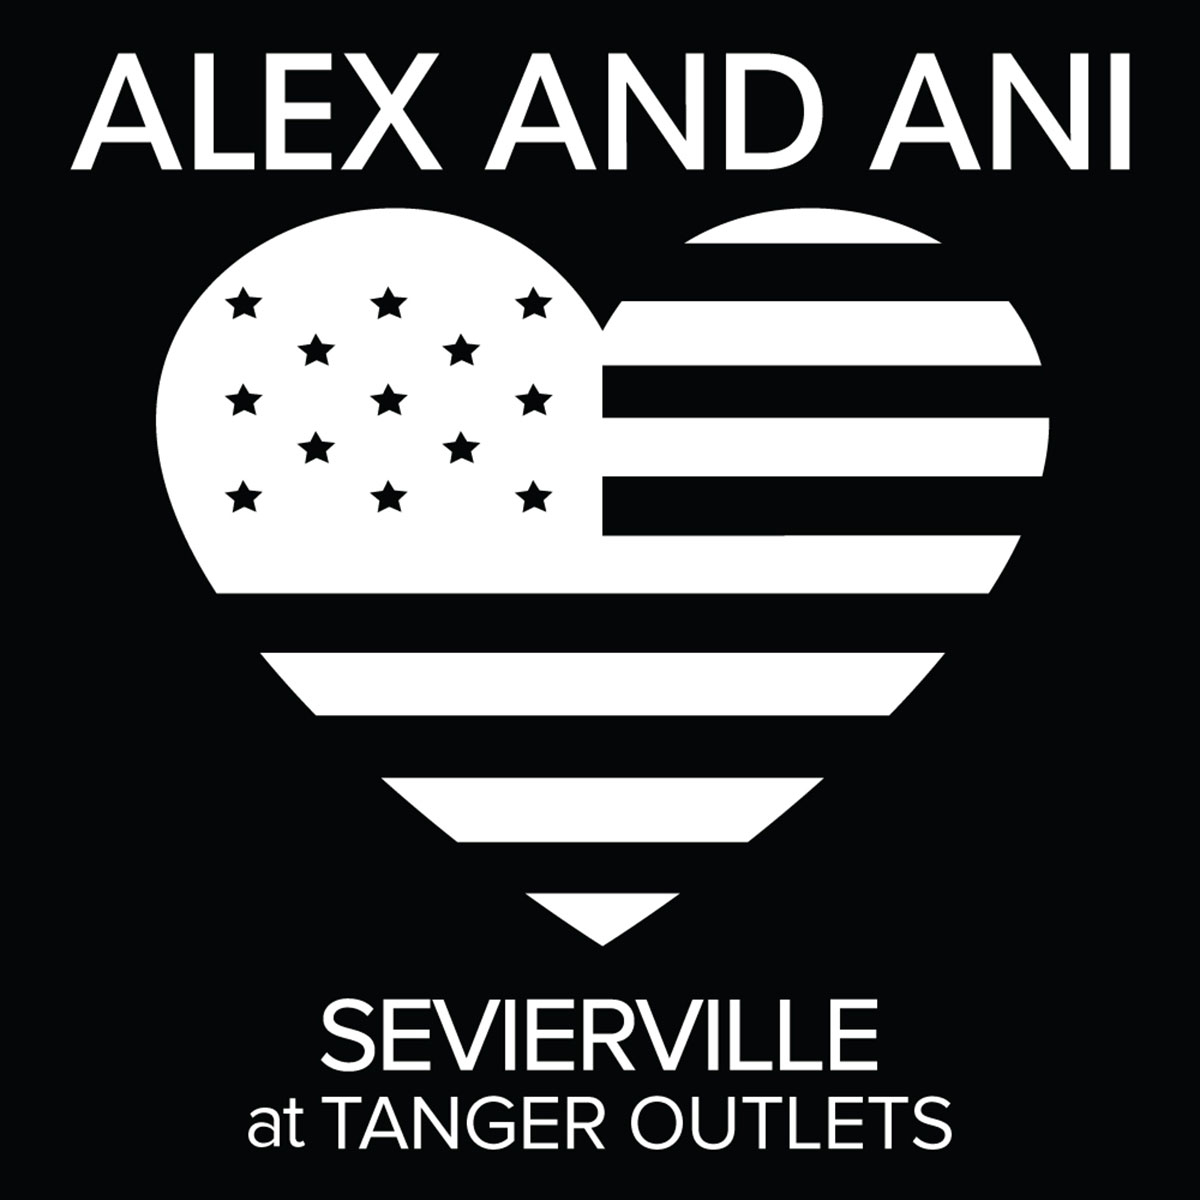 ALEX AND ANI image 2